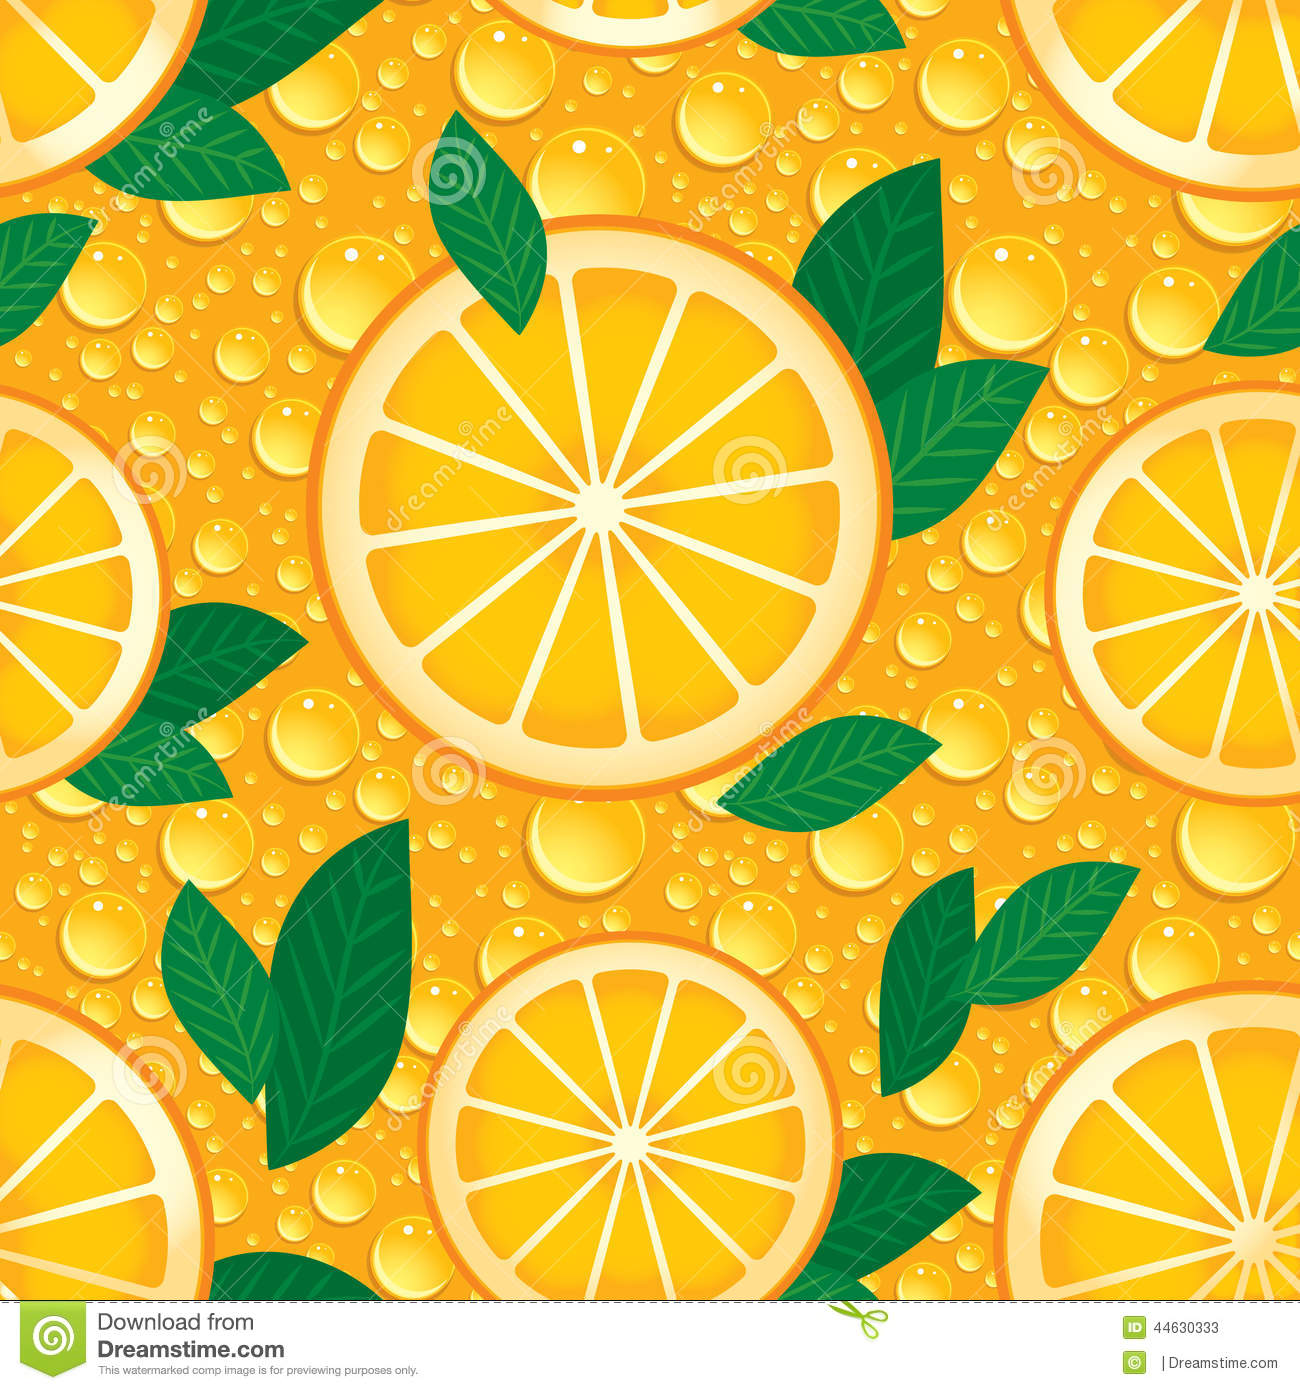 Orange with green leaves seamless pattern. Vector.